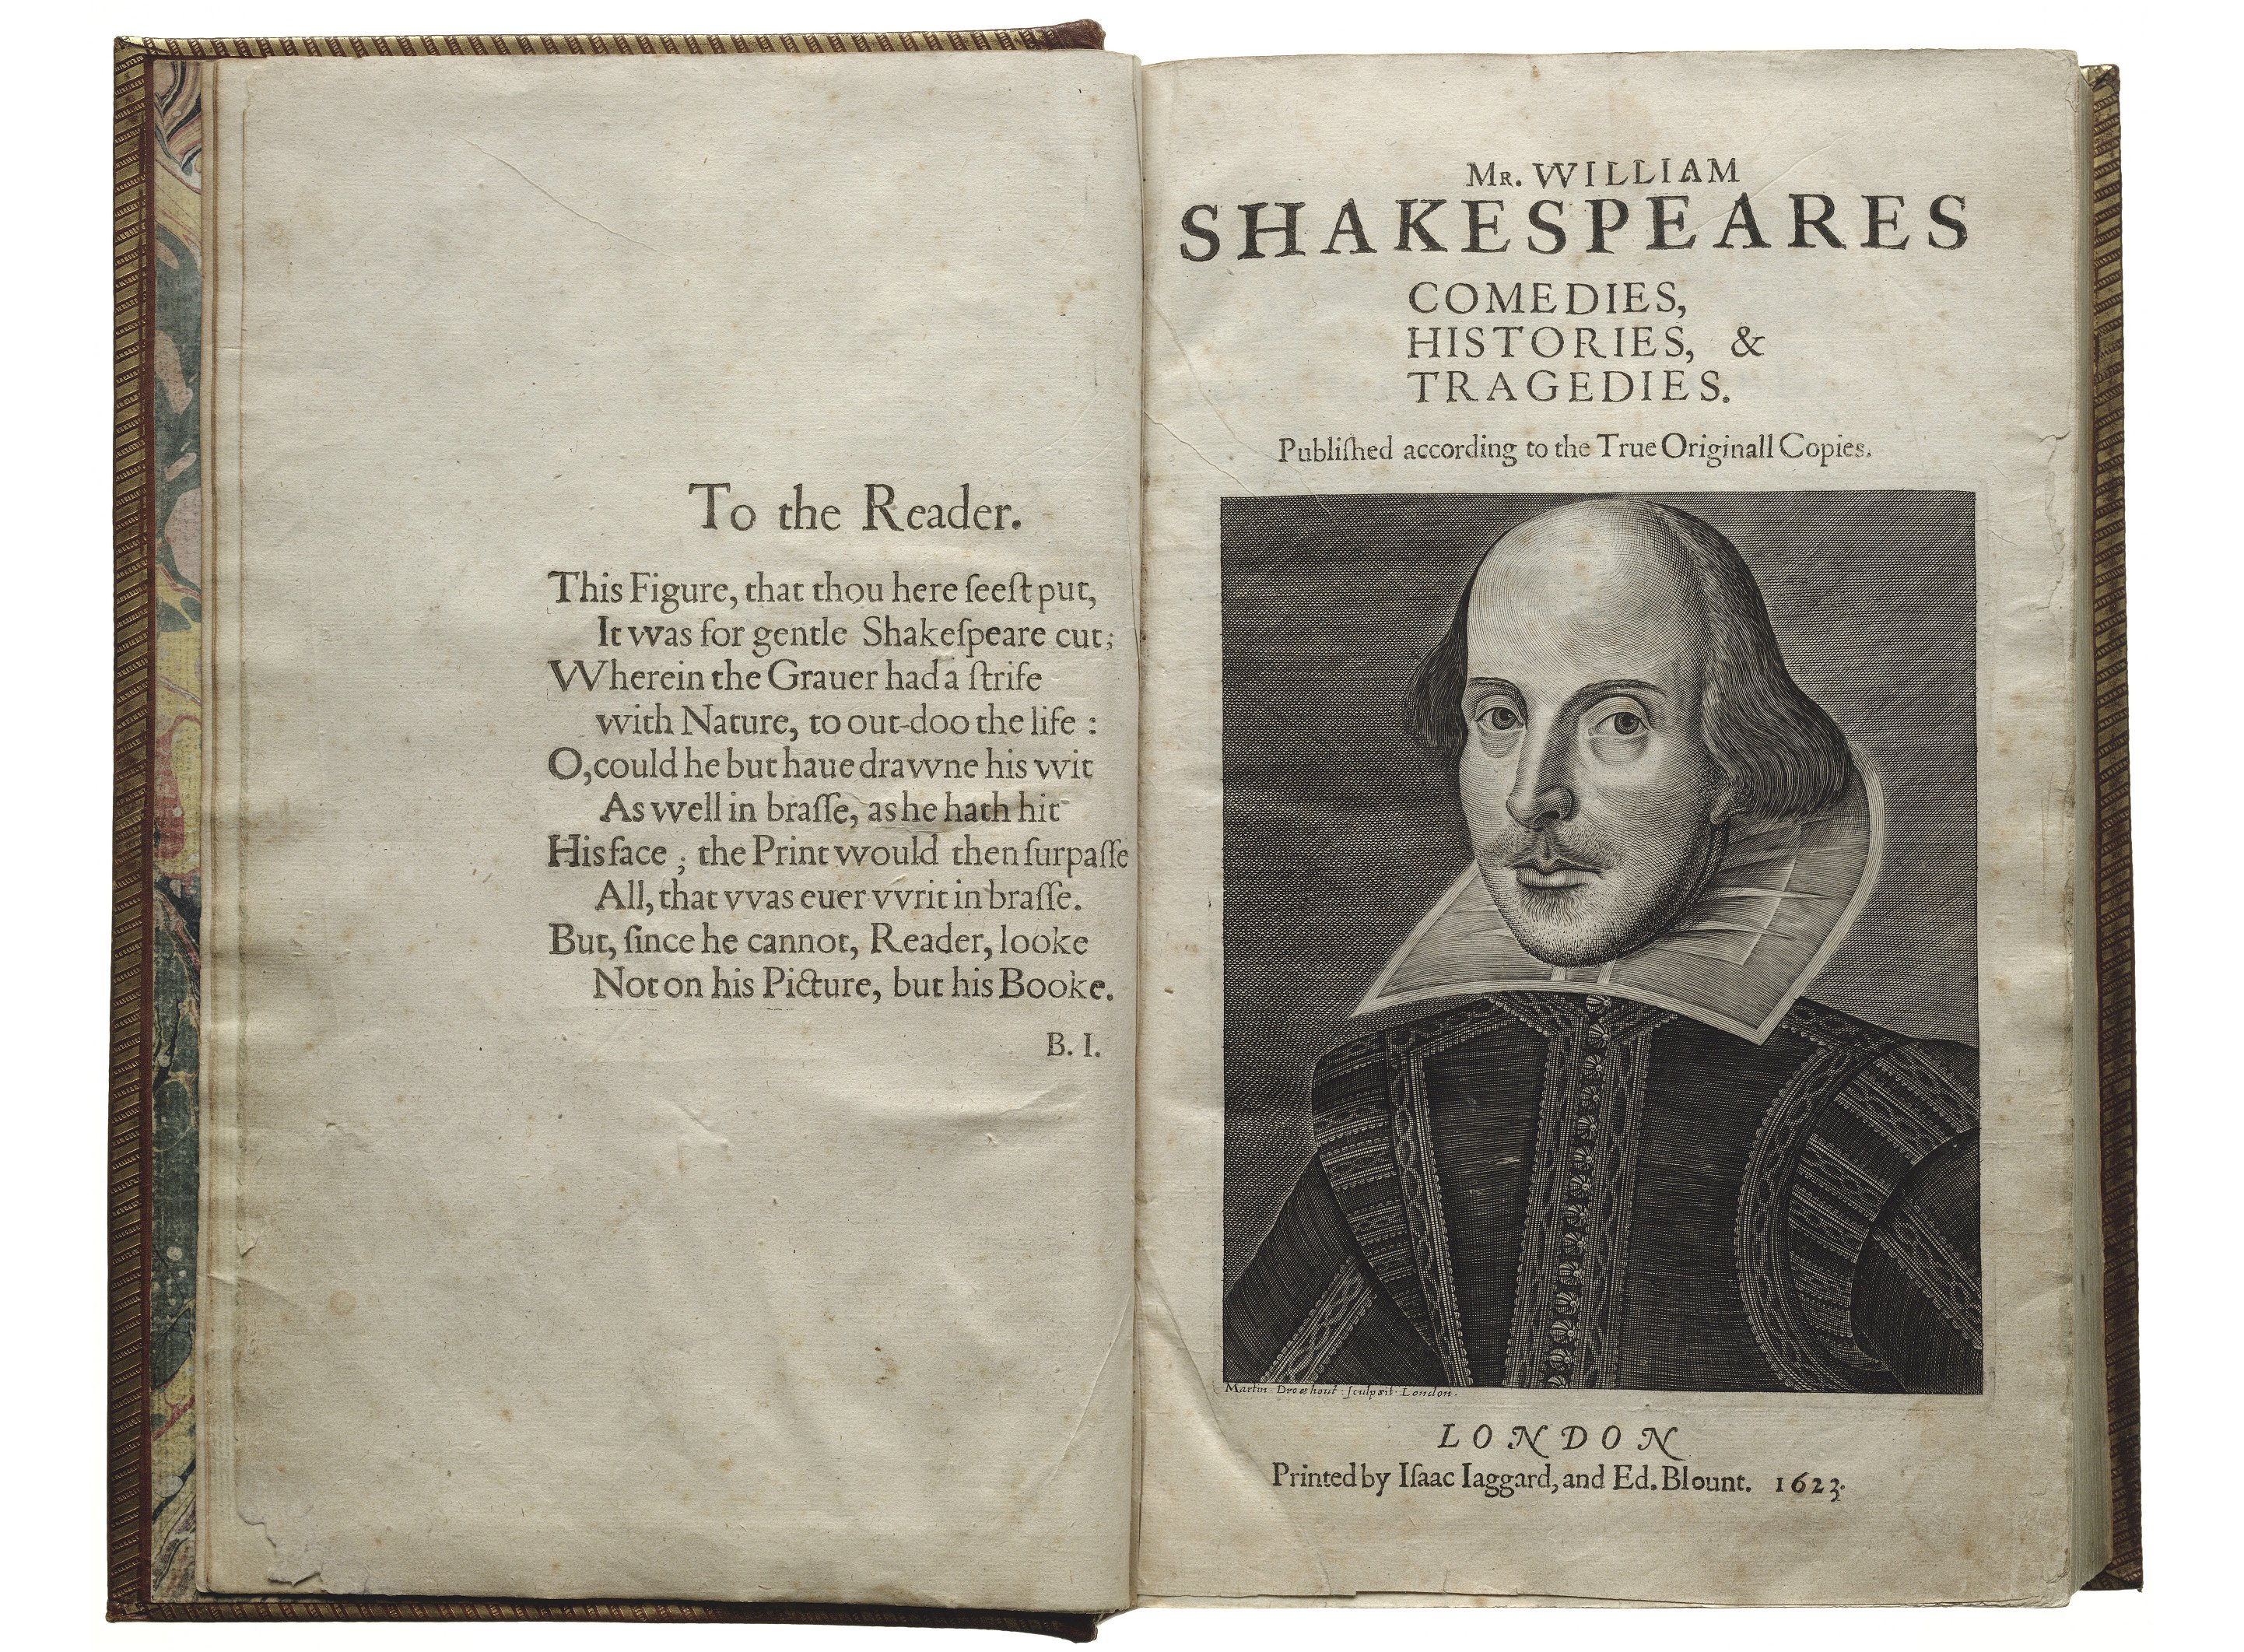 Photo: First Folio title page